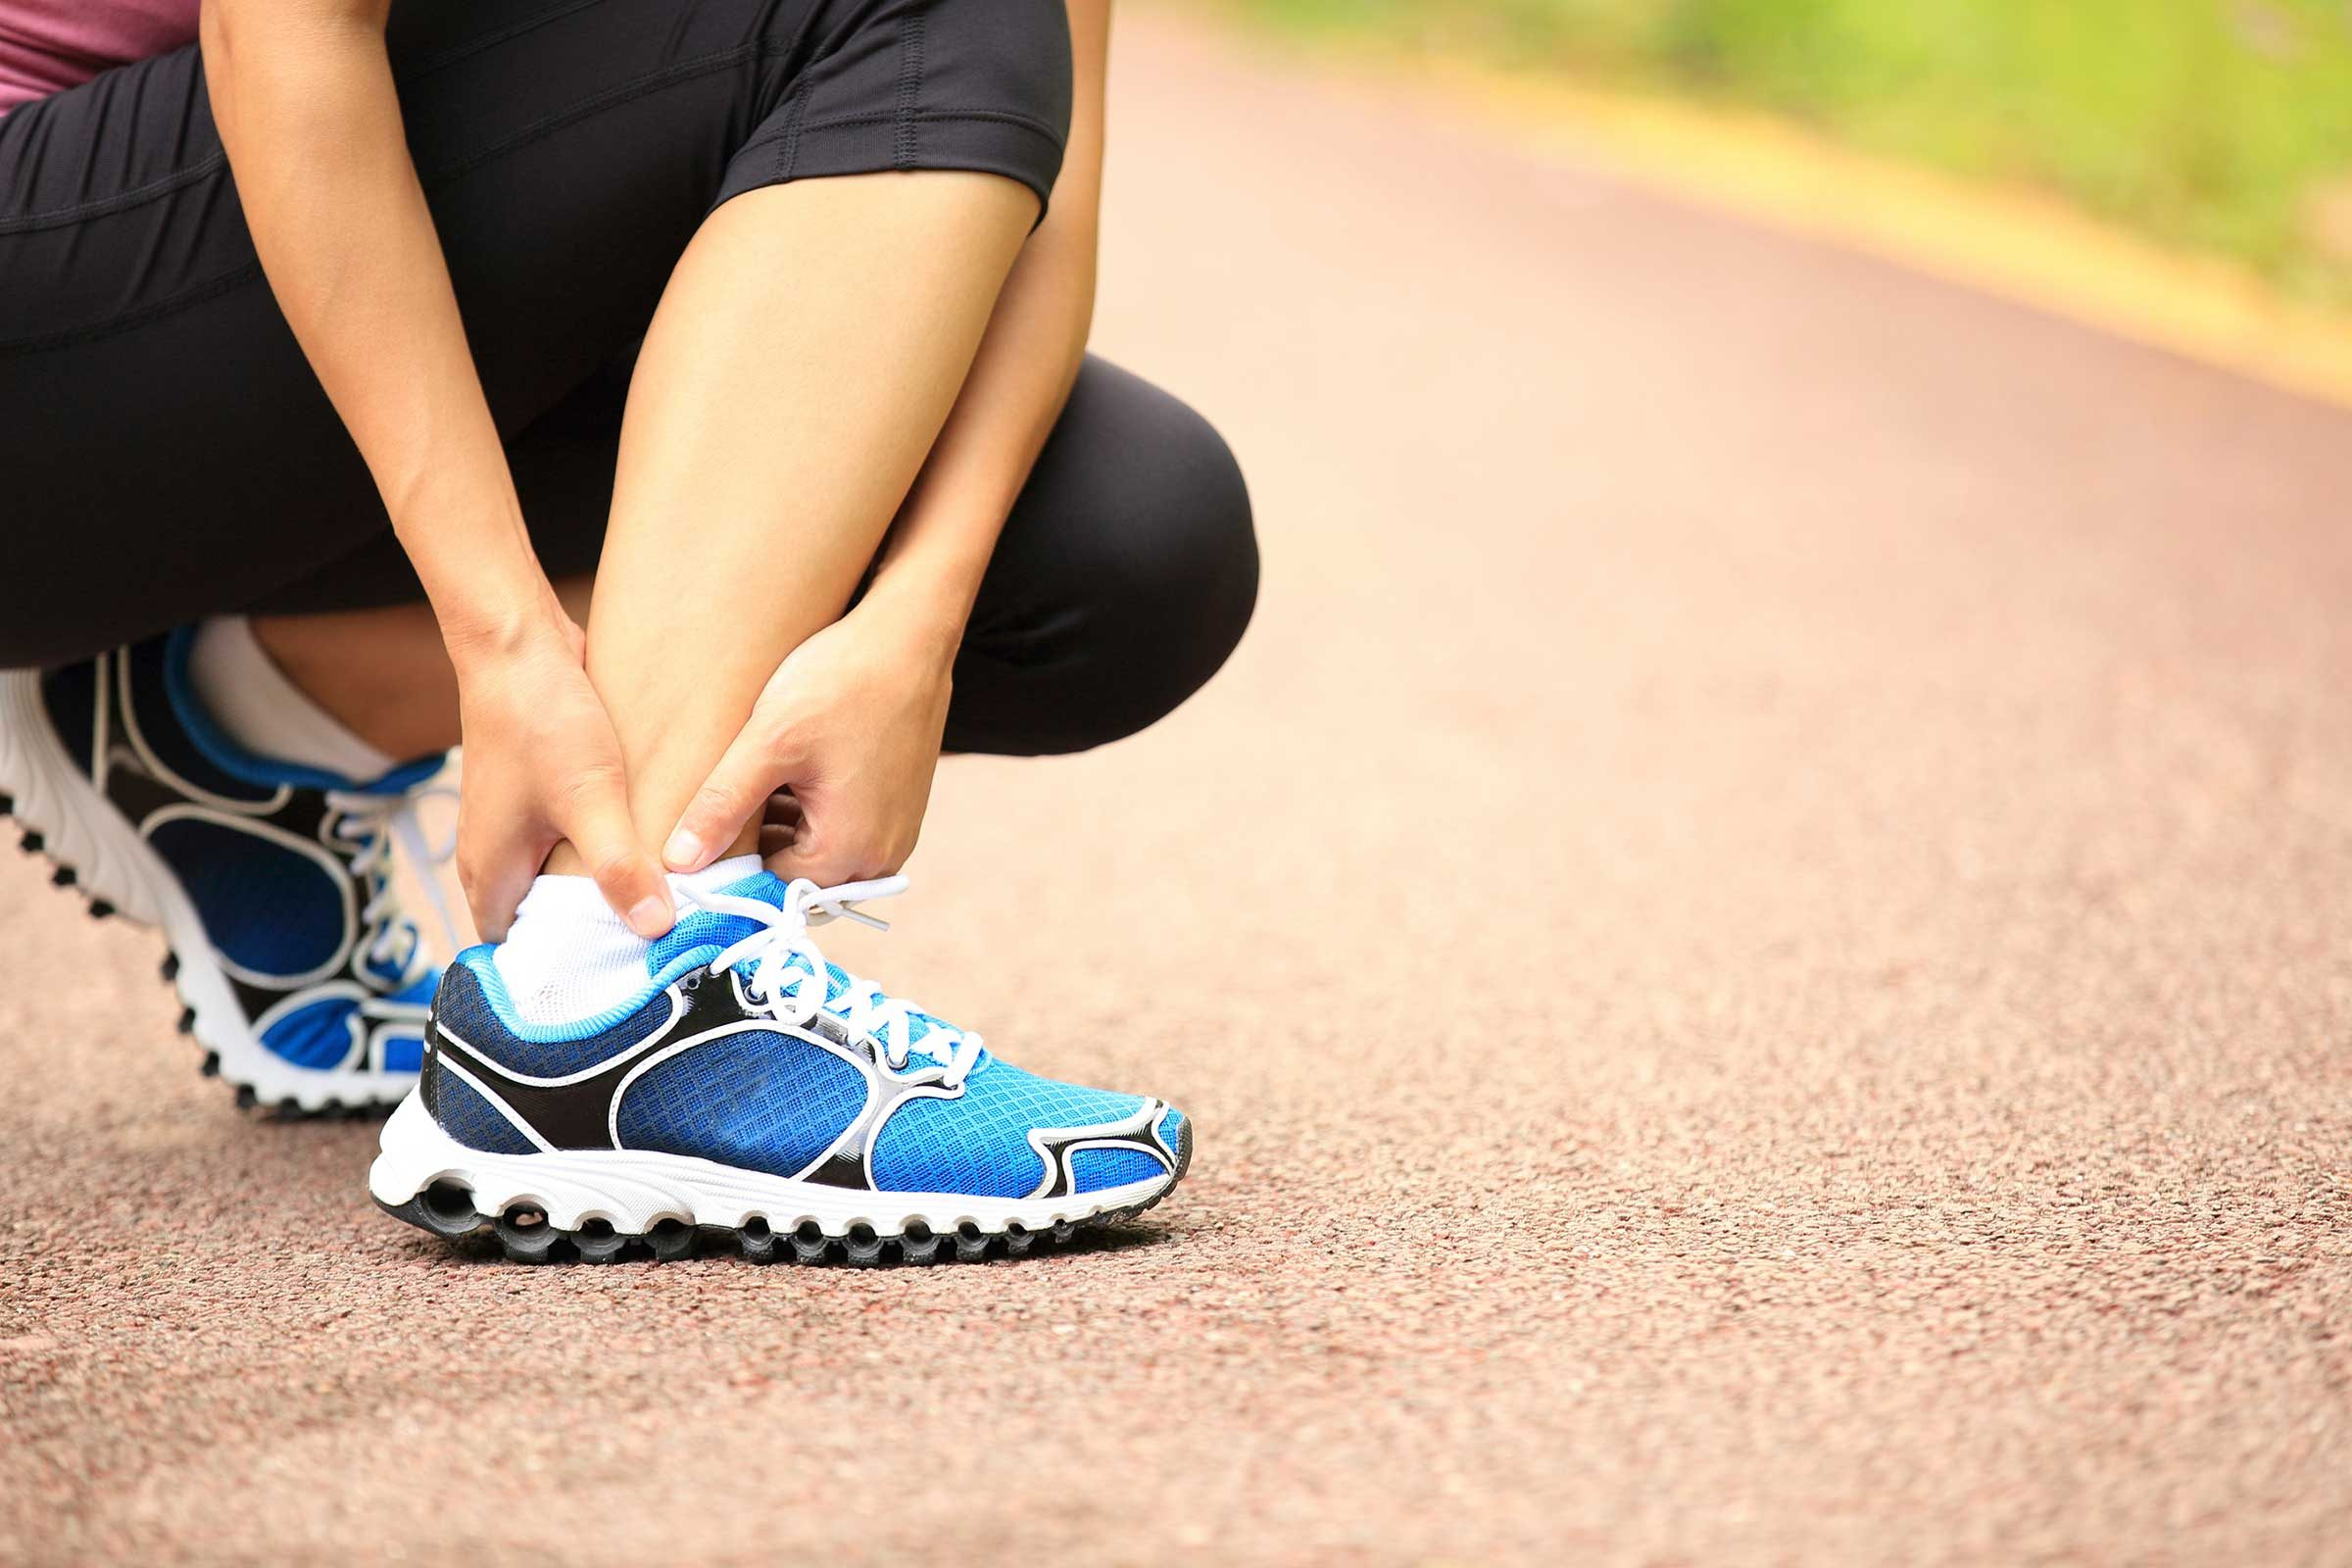 How to Treat Athlete's Foot Naturally | Reader's Digest